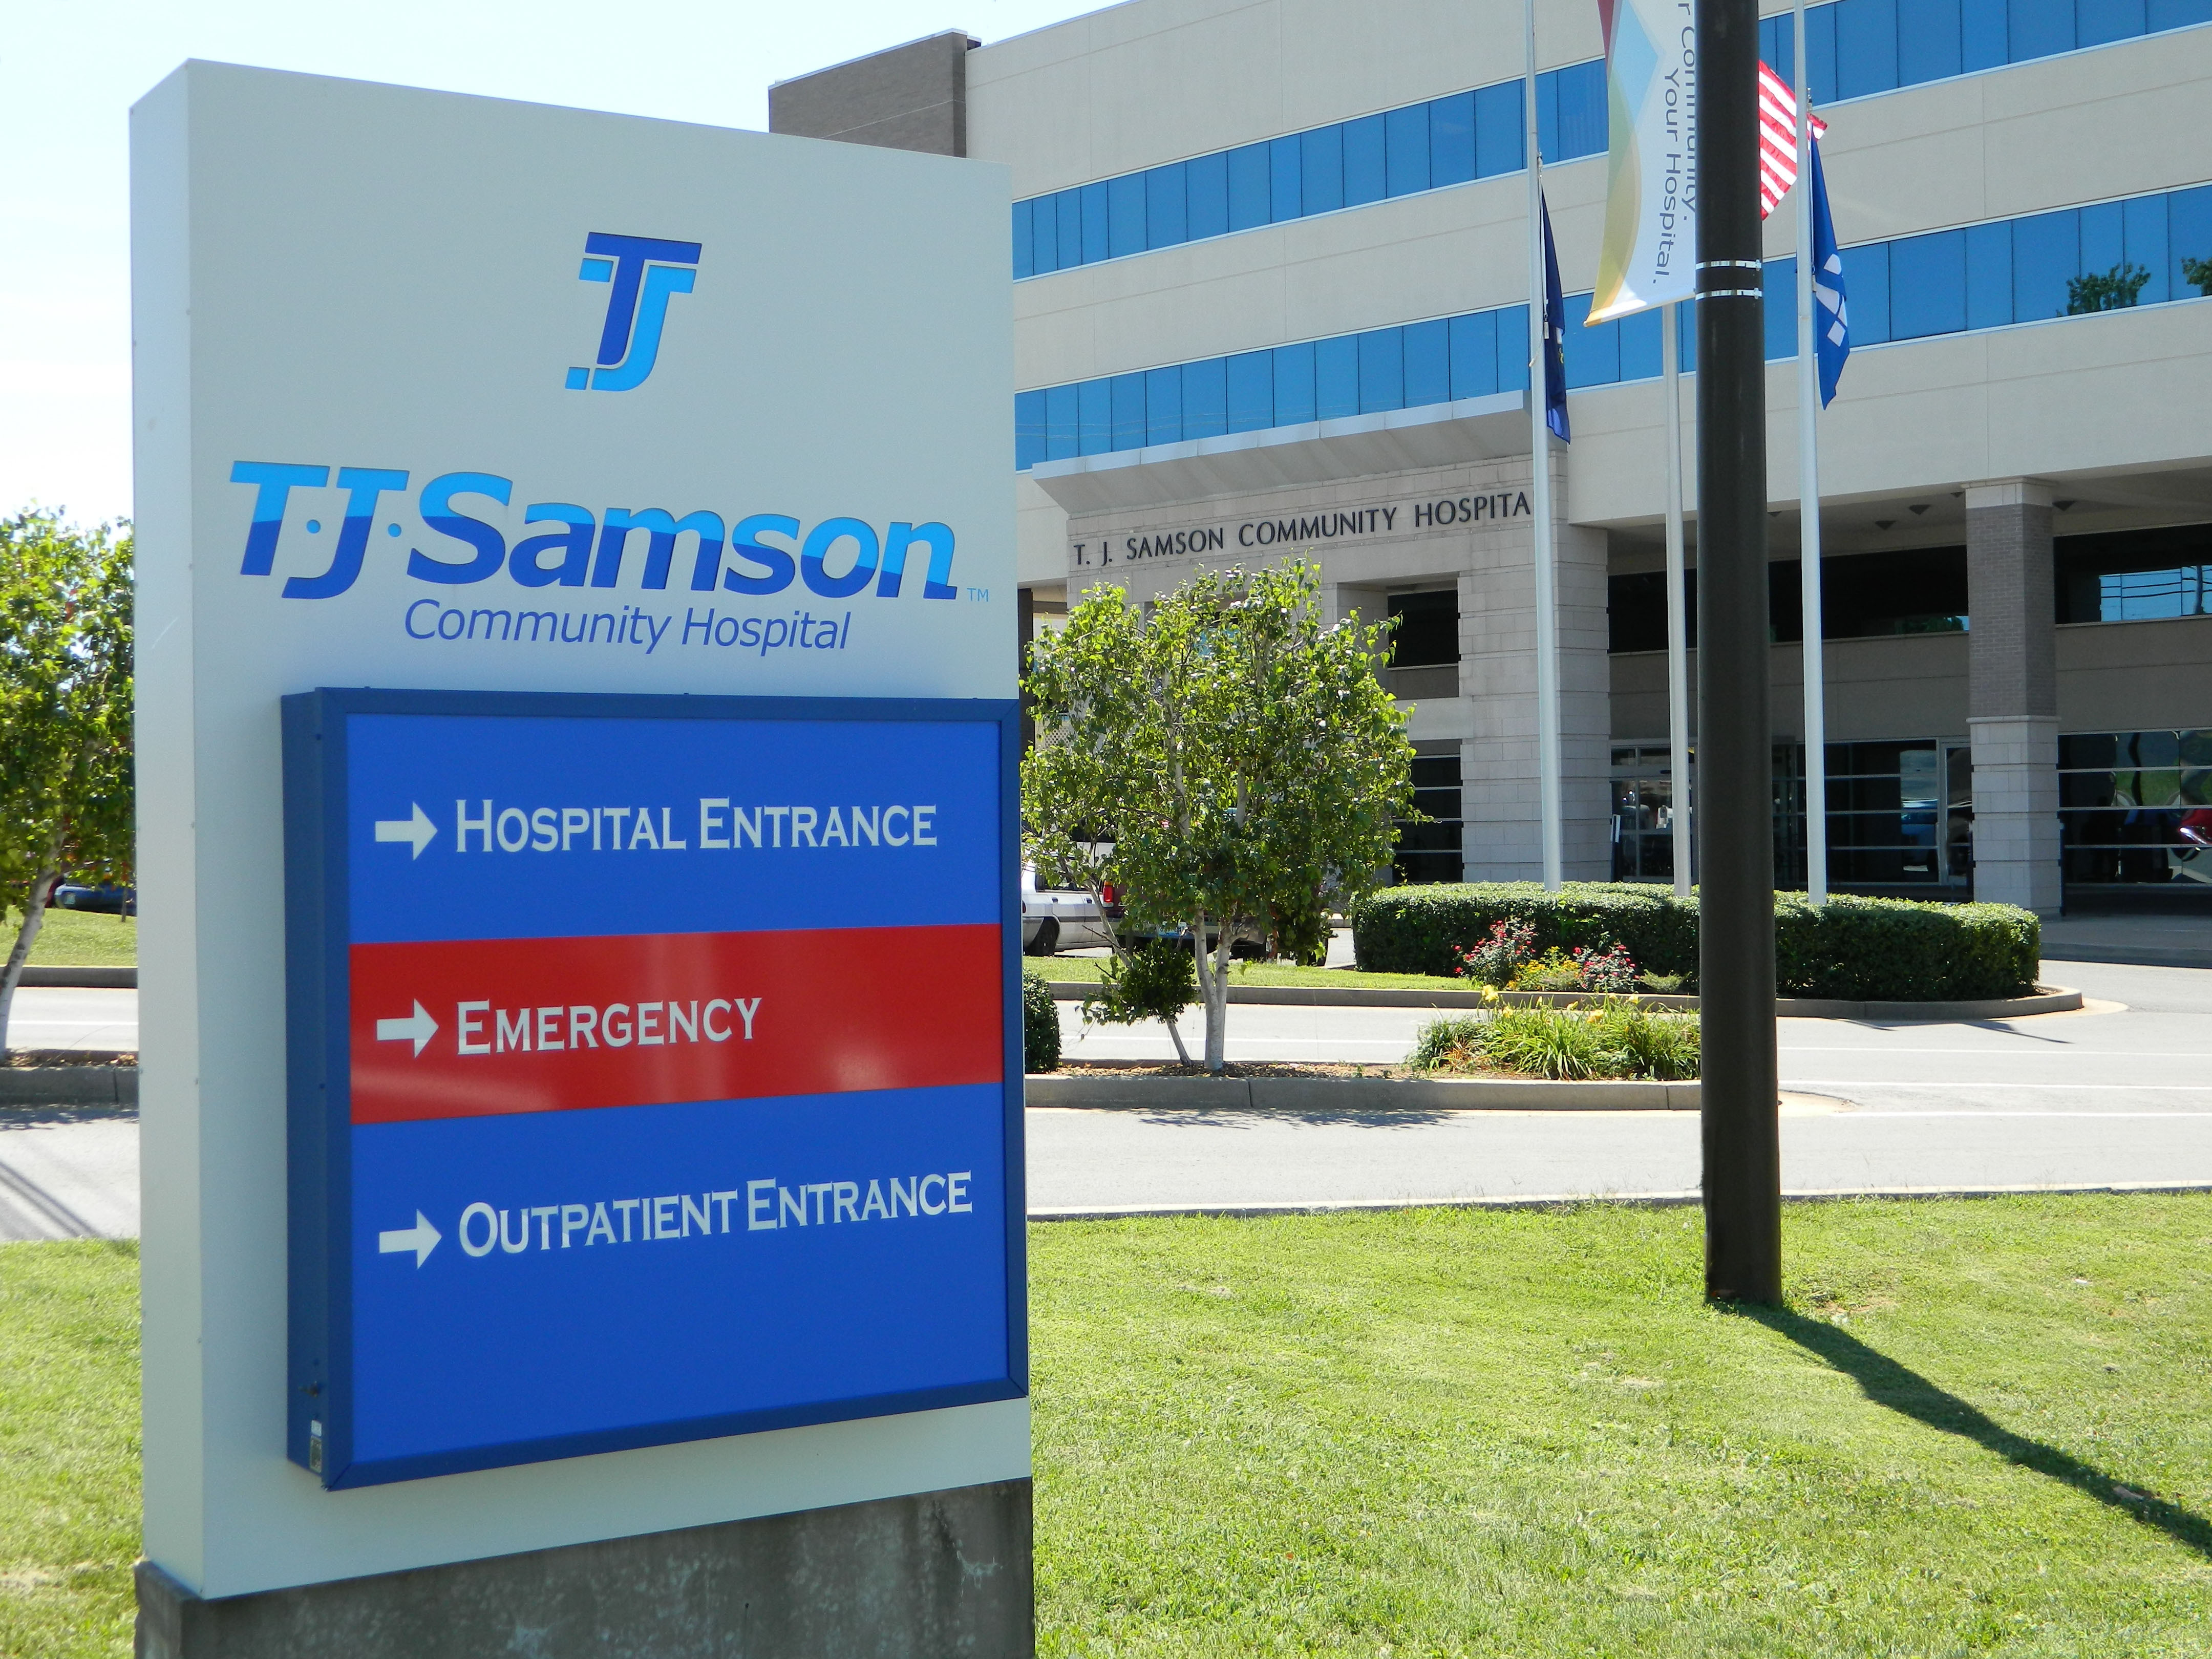 T.J. Samson is the First Hospital in Kentucky to Adopt Patient ...